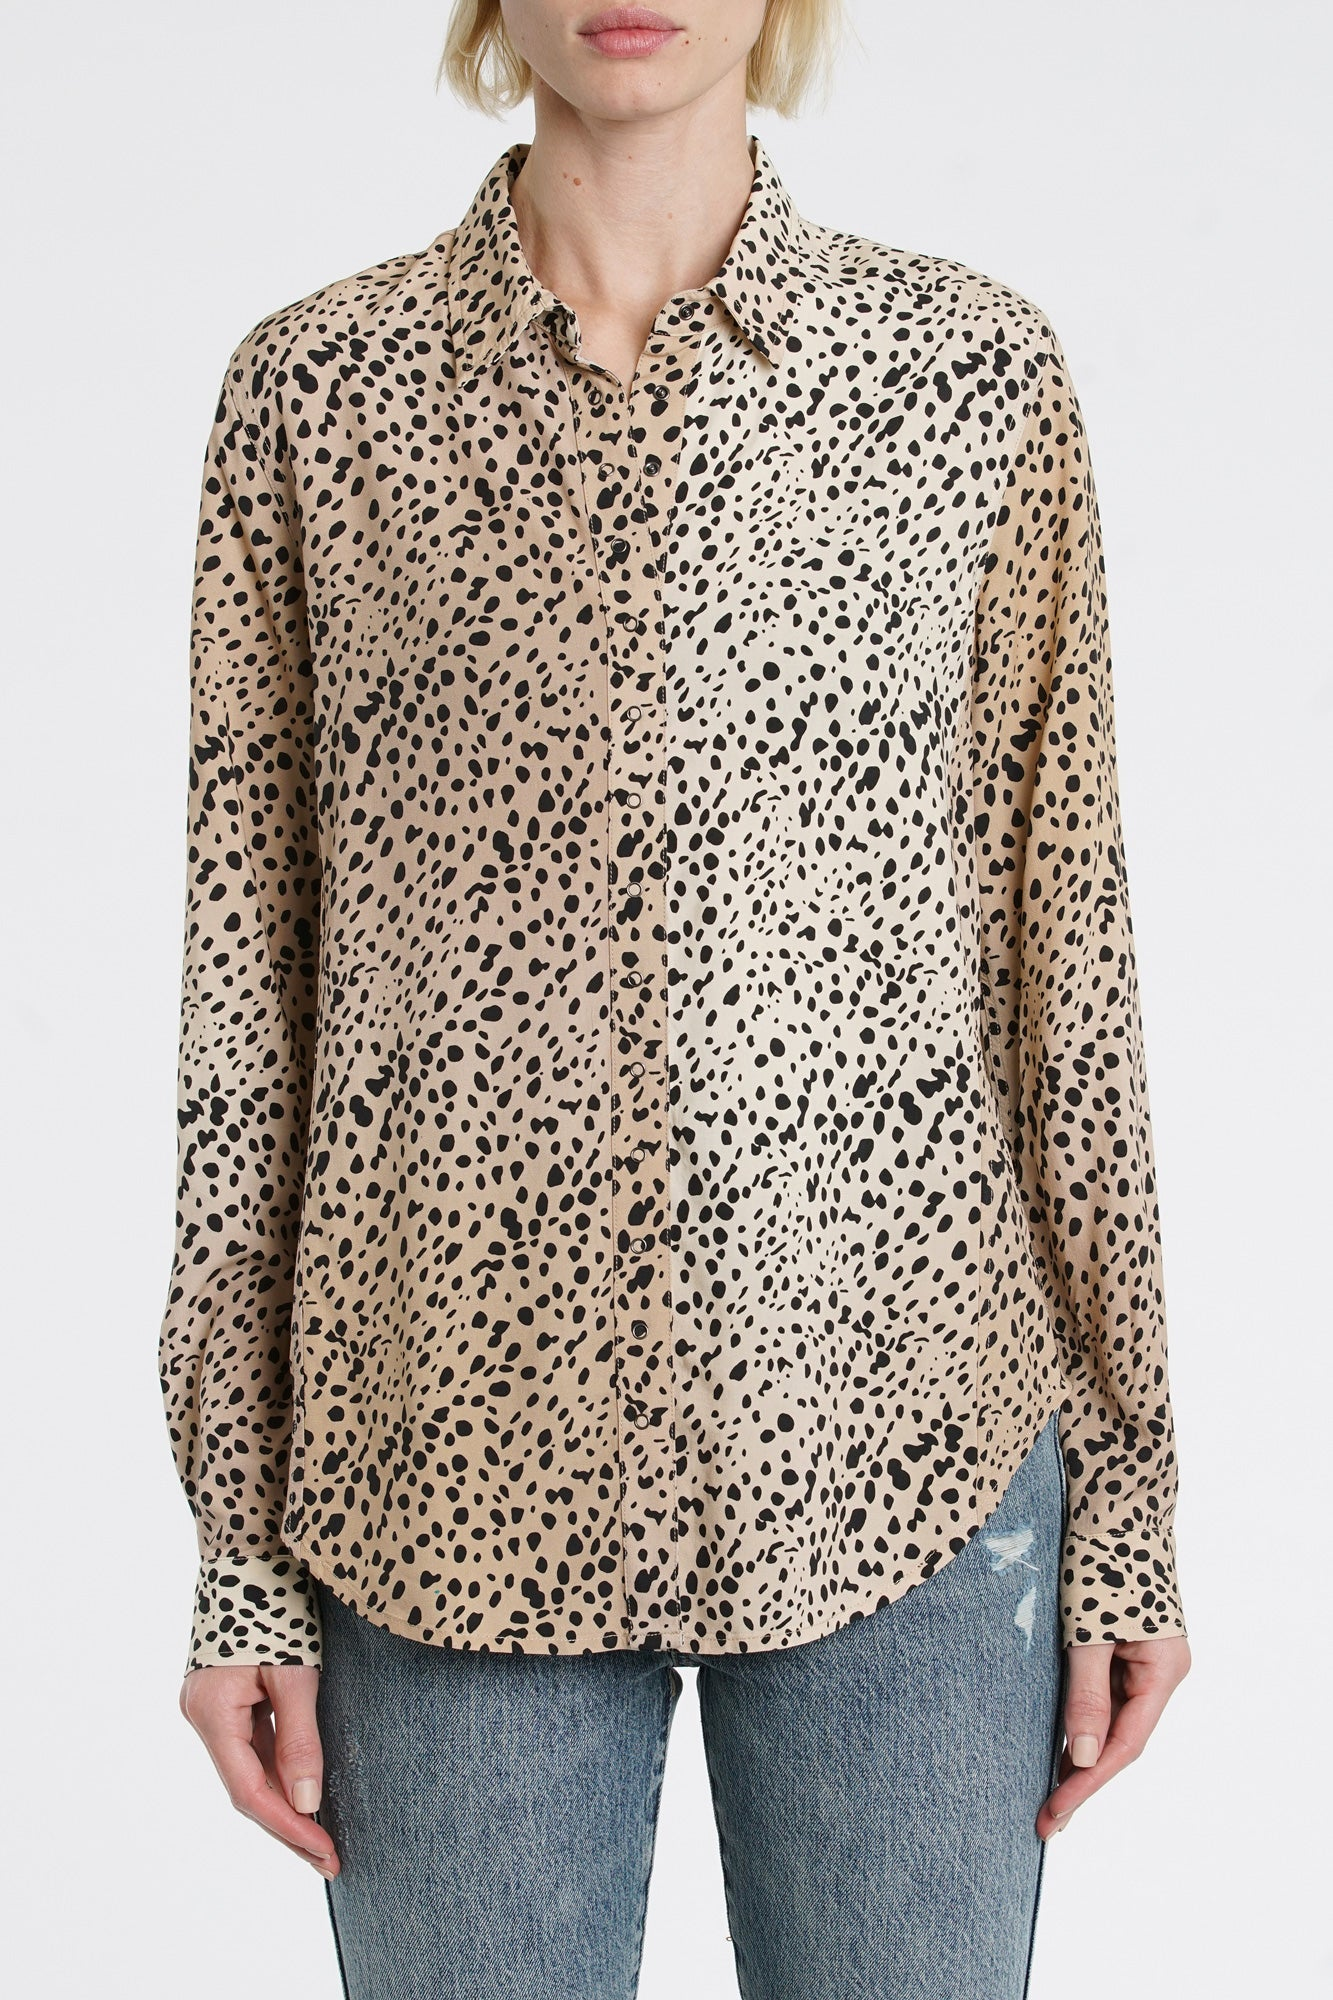 Elle Long Sleeve Baby Snap Shirt - Wild Spots